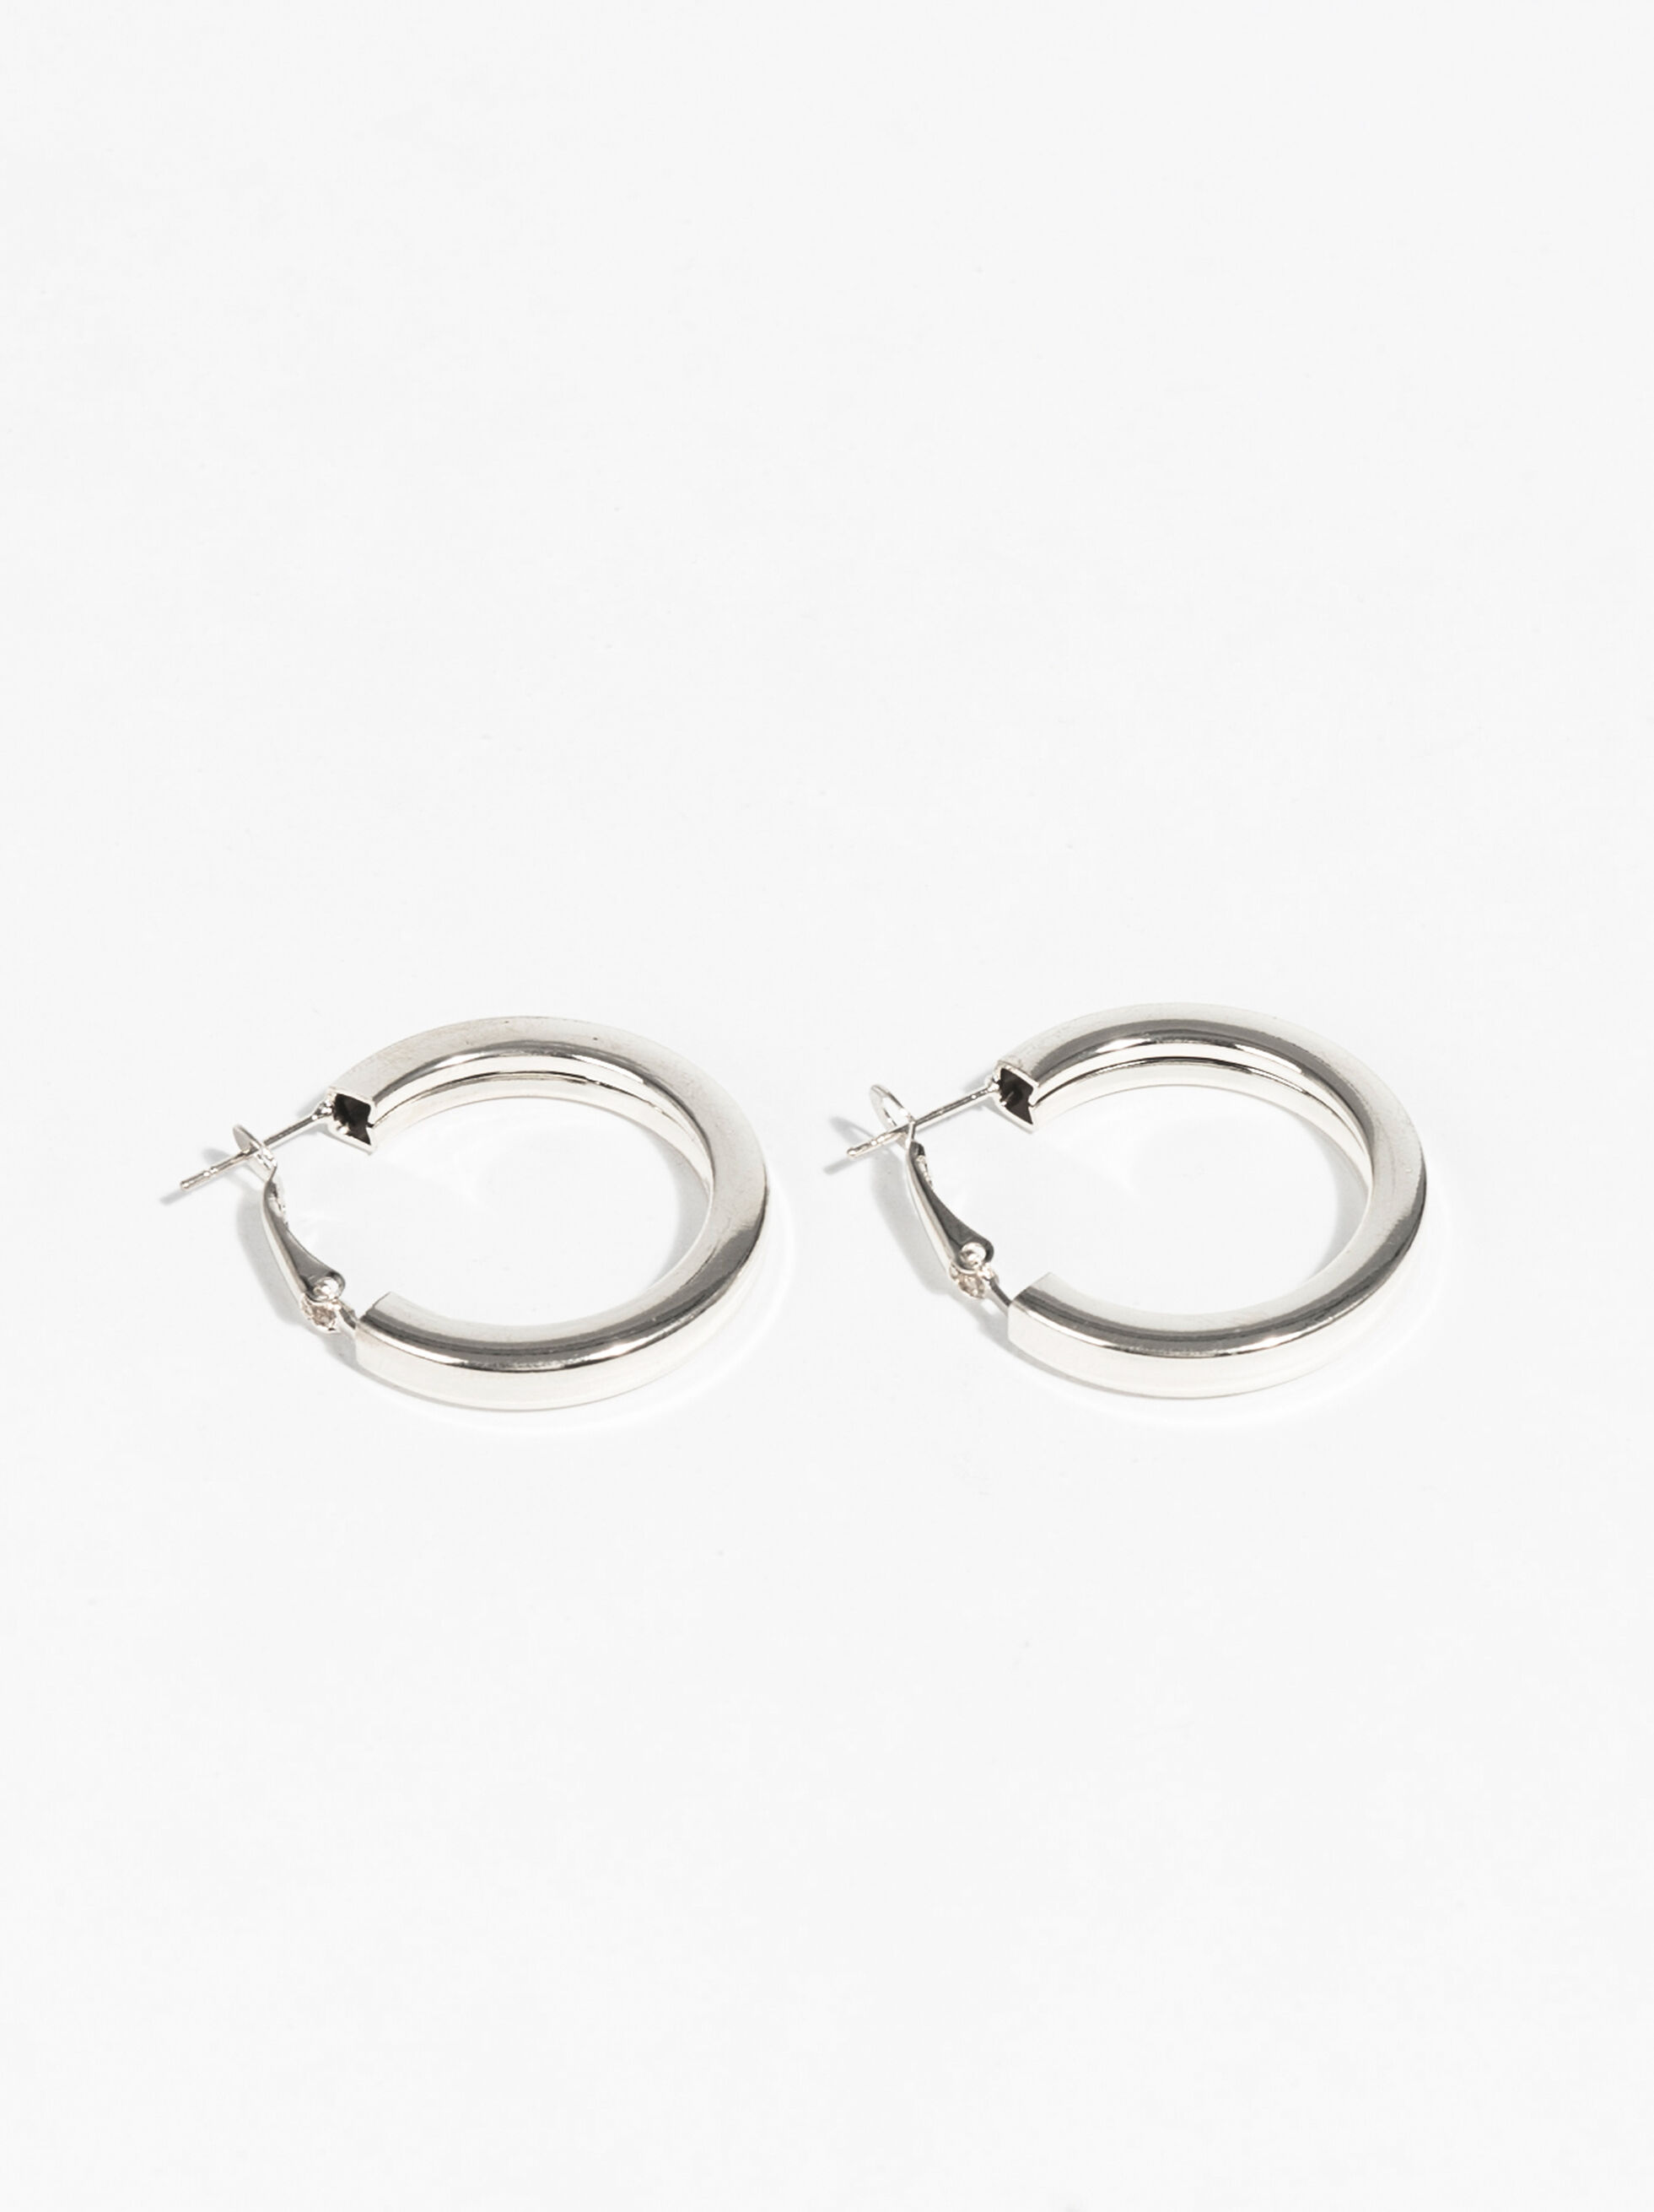 Basic Grandes Hoop-Earrings, Silver, hi-res